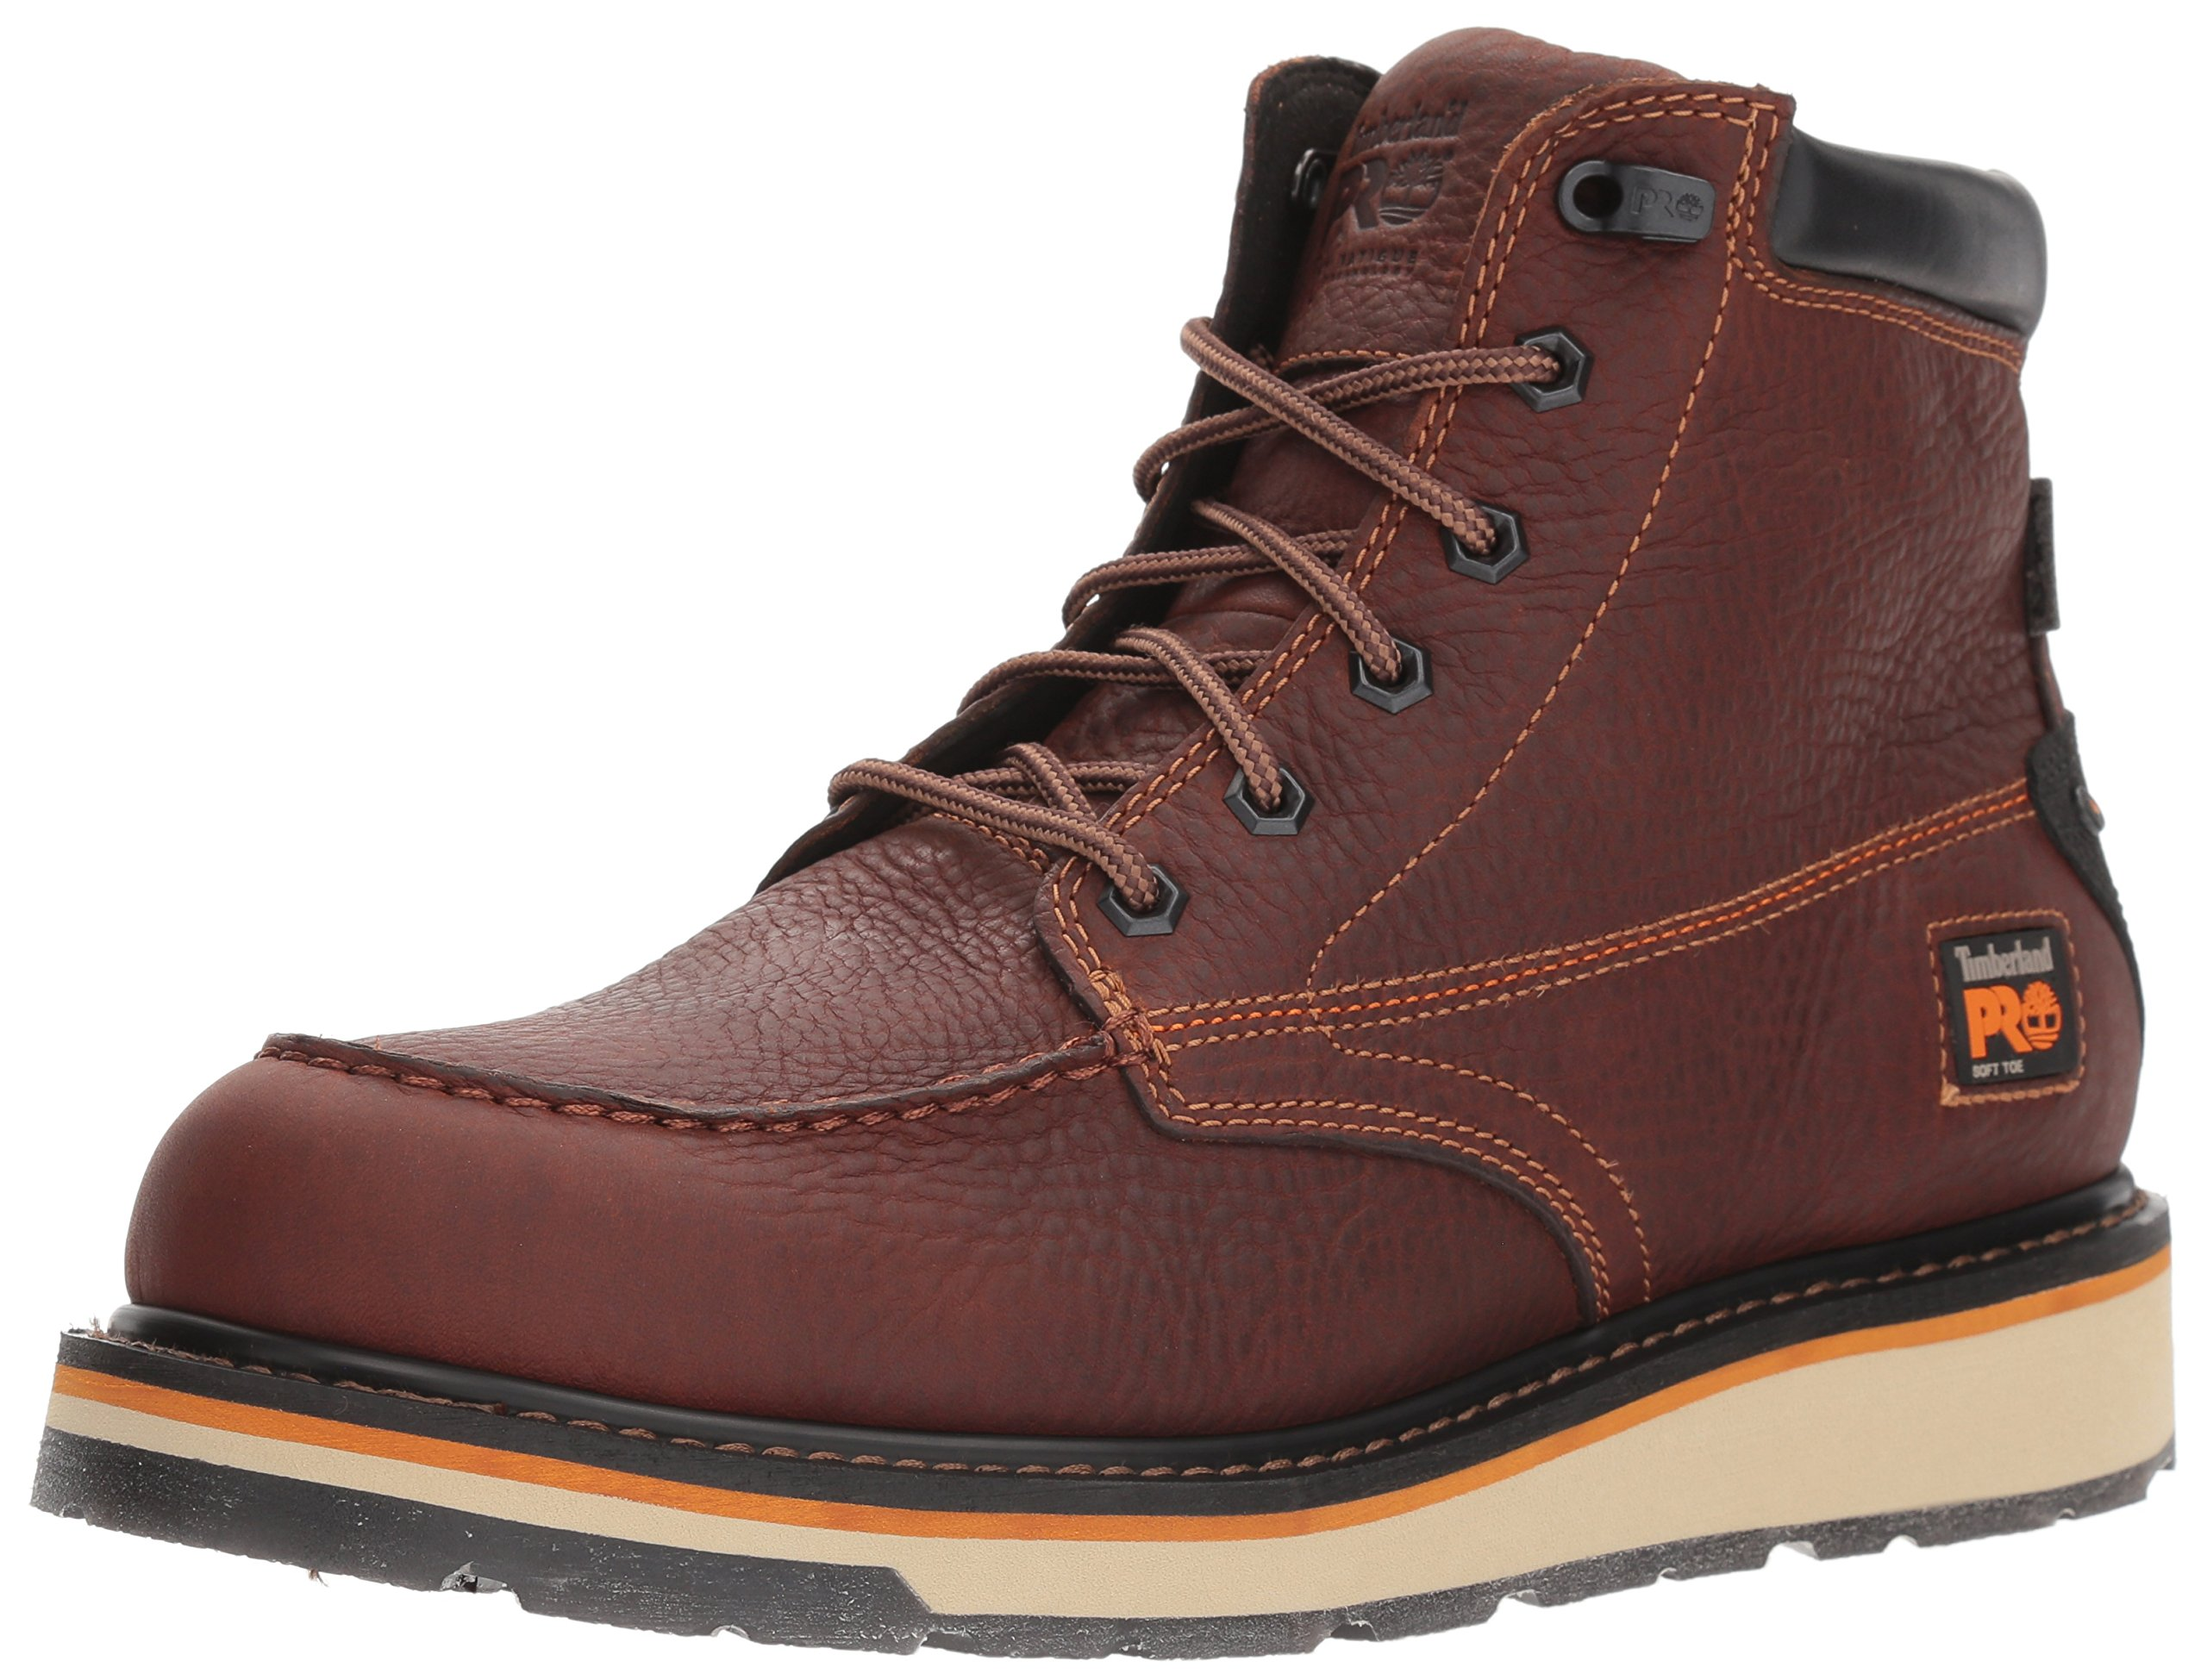 Timberland PRO Men's Gridworks Moc Soft Toe Waterproof Industrial Boot, Brown, 11.5 W US